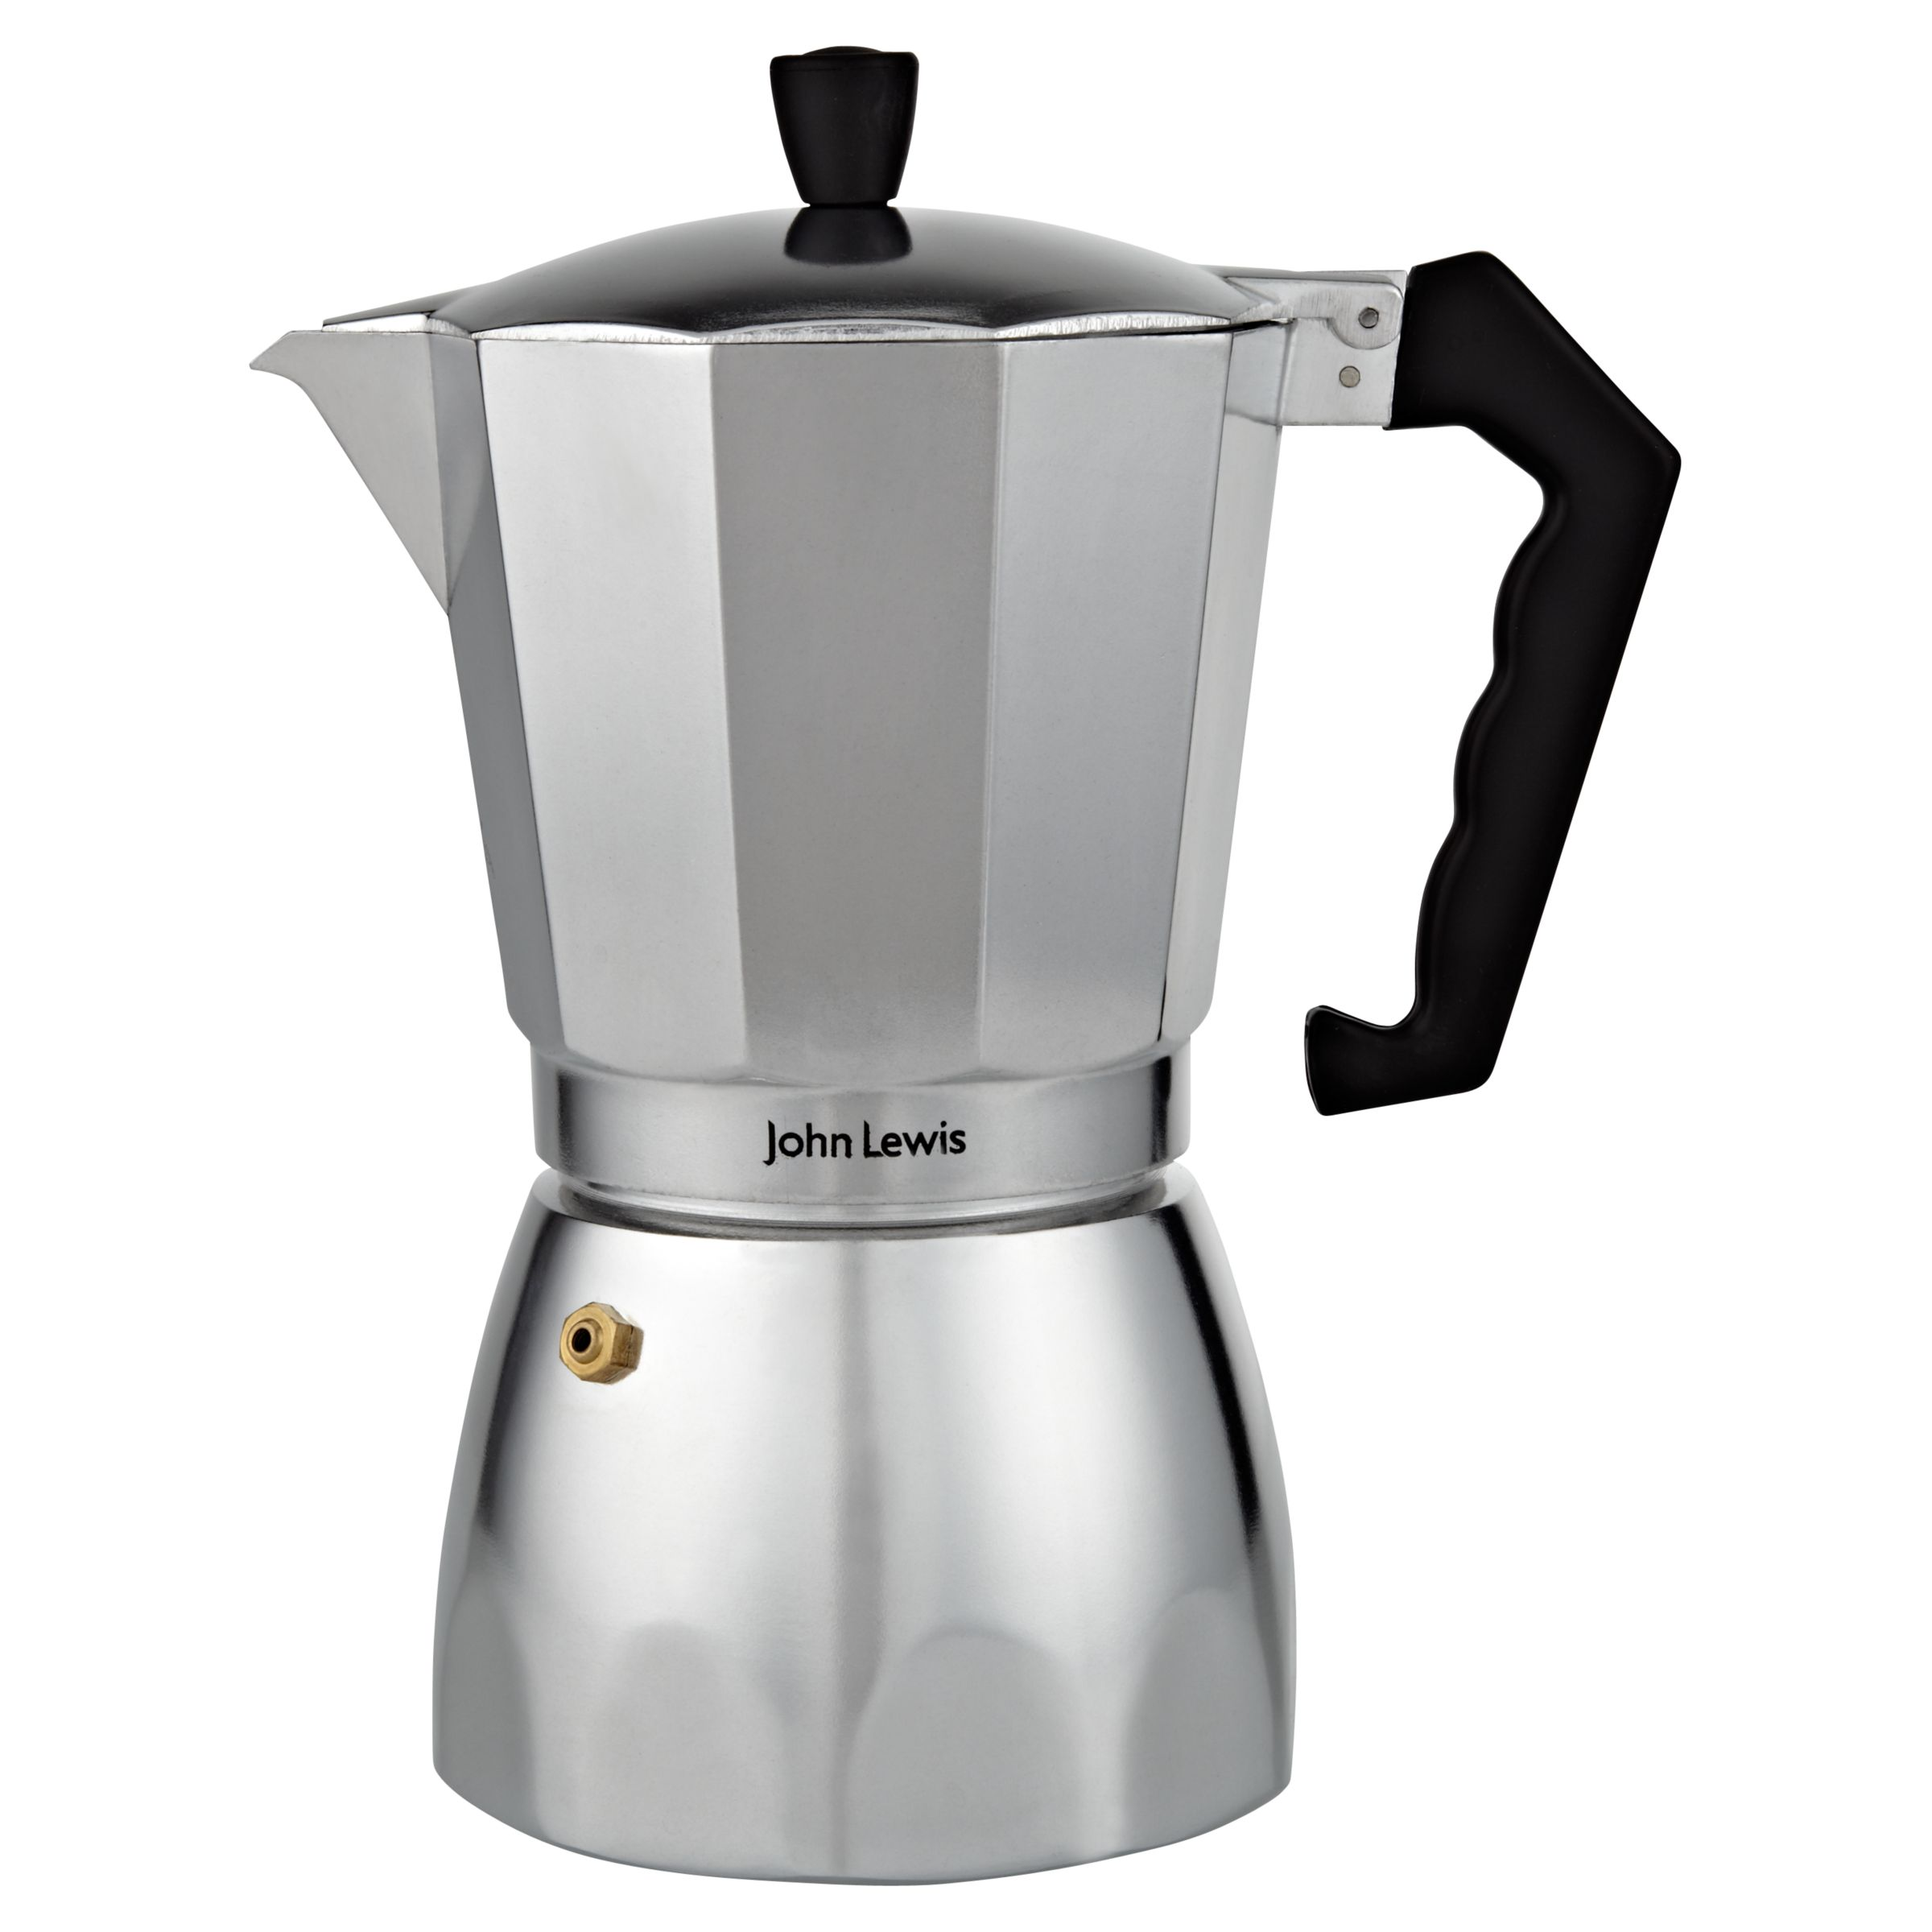 Italian Coffee Maker John Lewis : Buy cheap Italian coffee maker - compare Coffee Makers prices for best UK deals